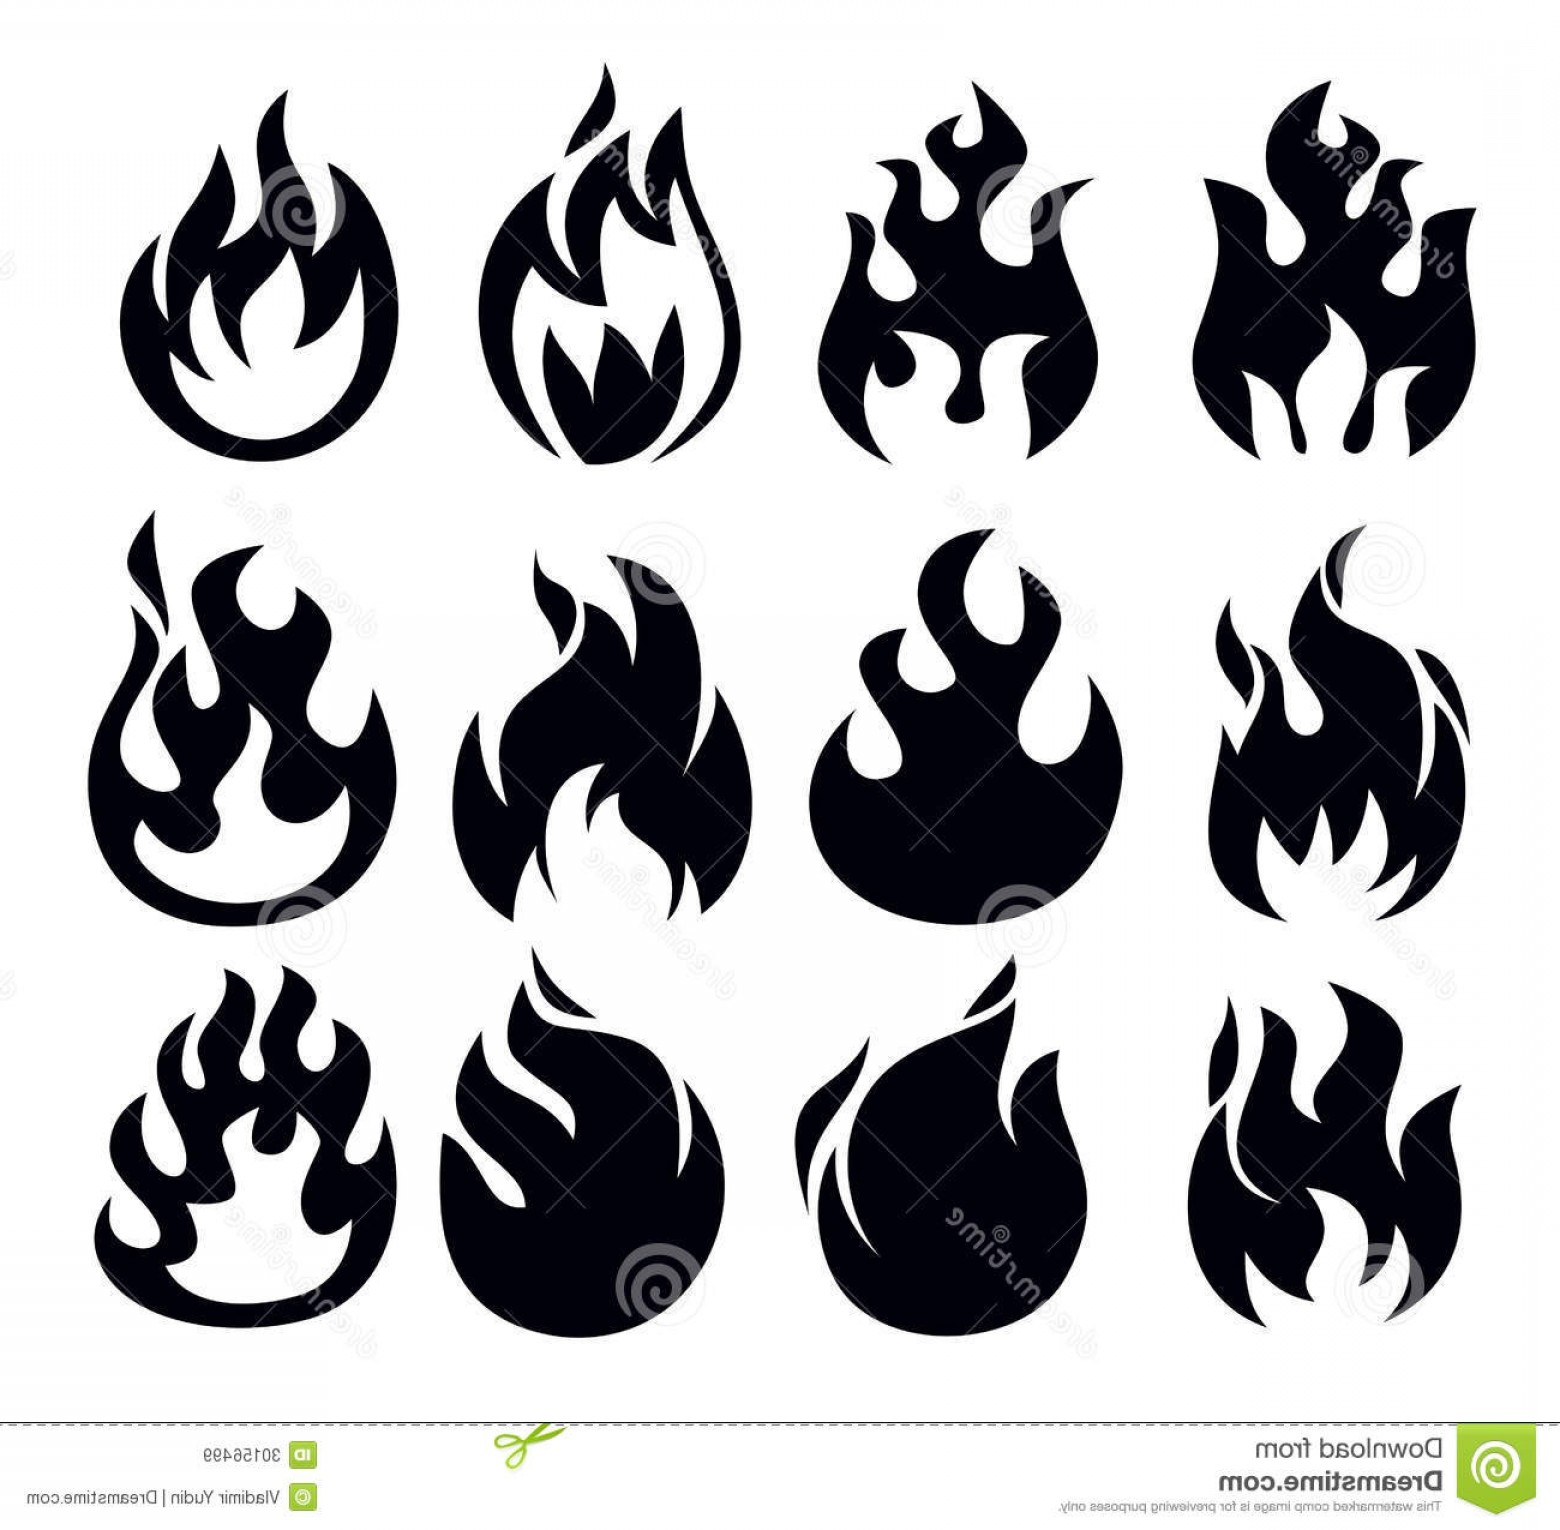 1560x1530 Royalty Free Stock Images Vector Black Fire Icon Set White Image